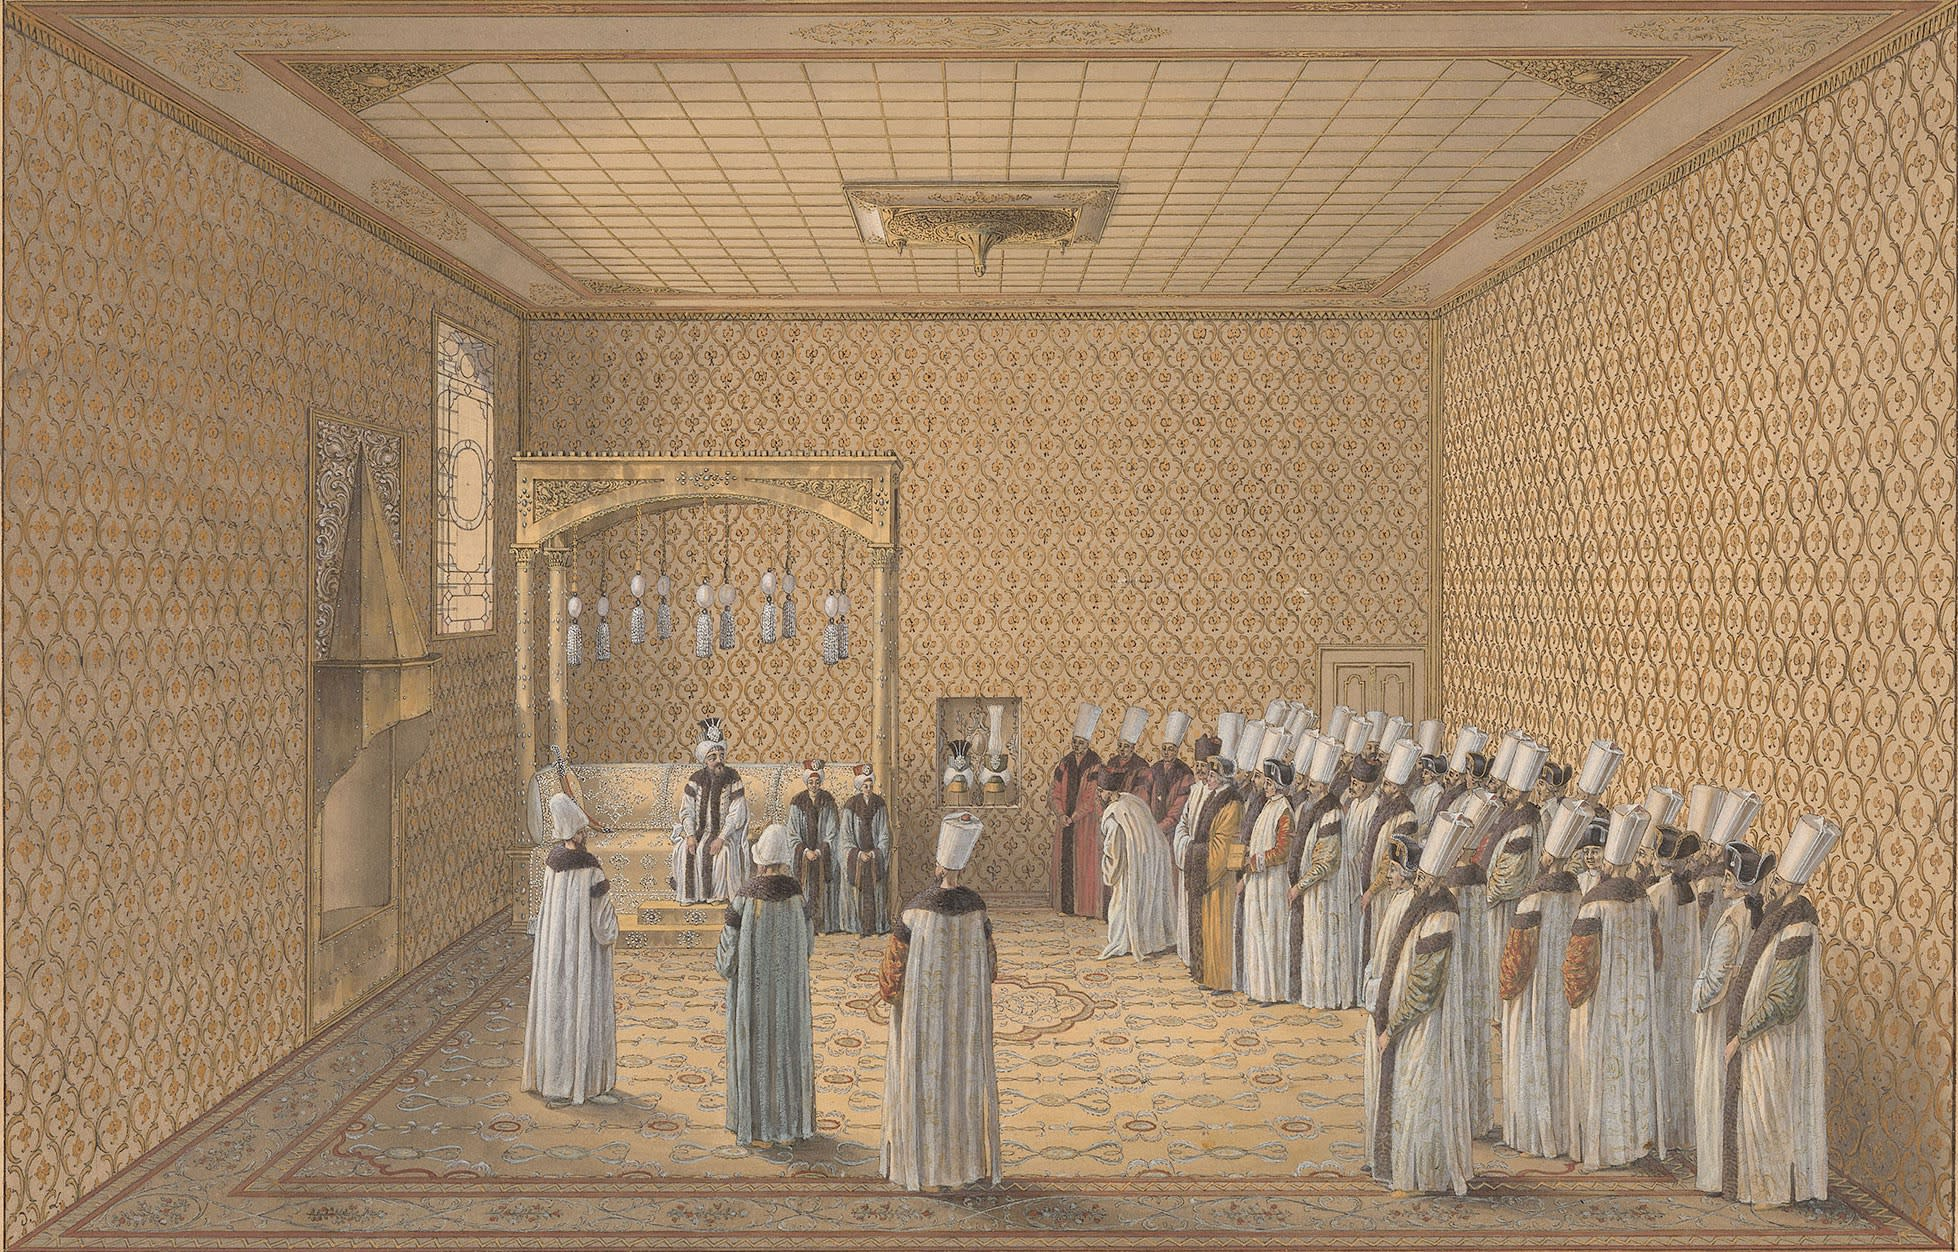 The Presentation of an Ambassador to the Sultan in the Topkapi Palace